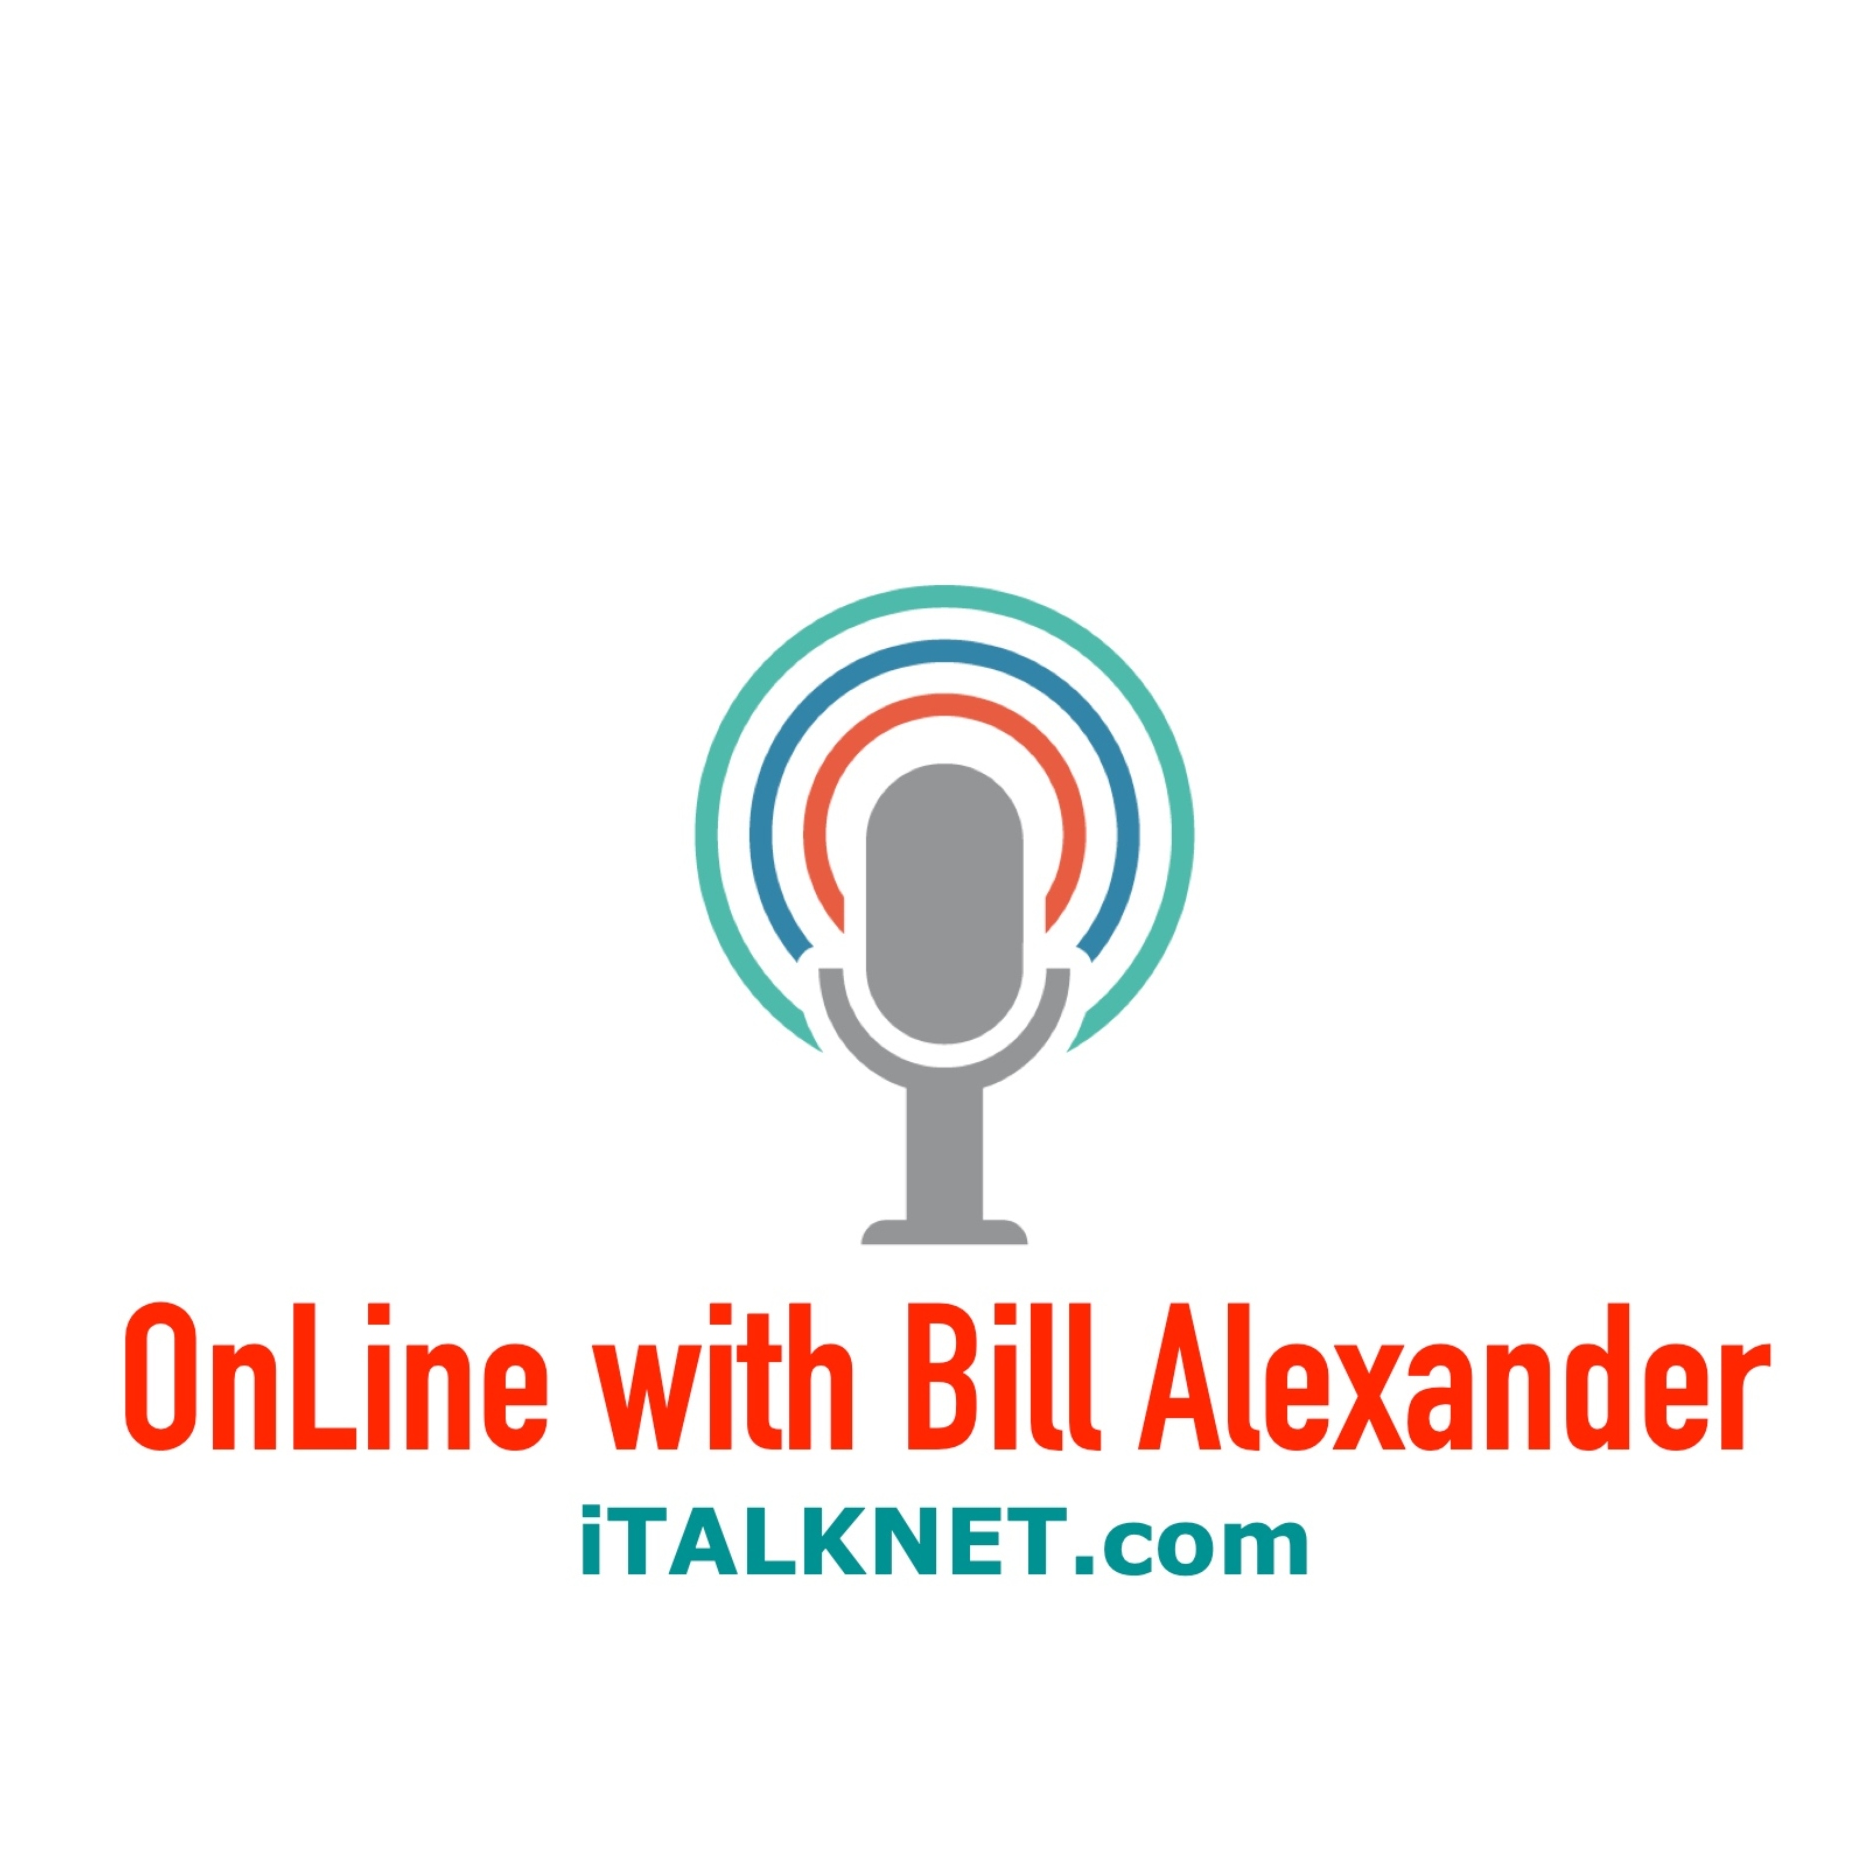 iTALKNET - OnLine with Bill Alexander